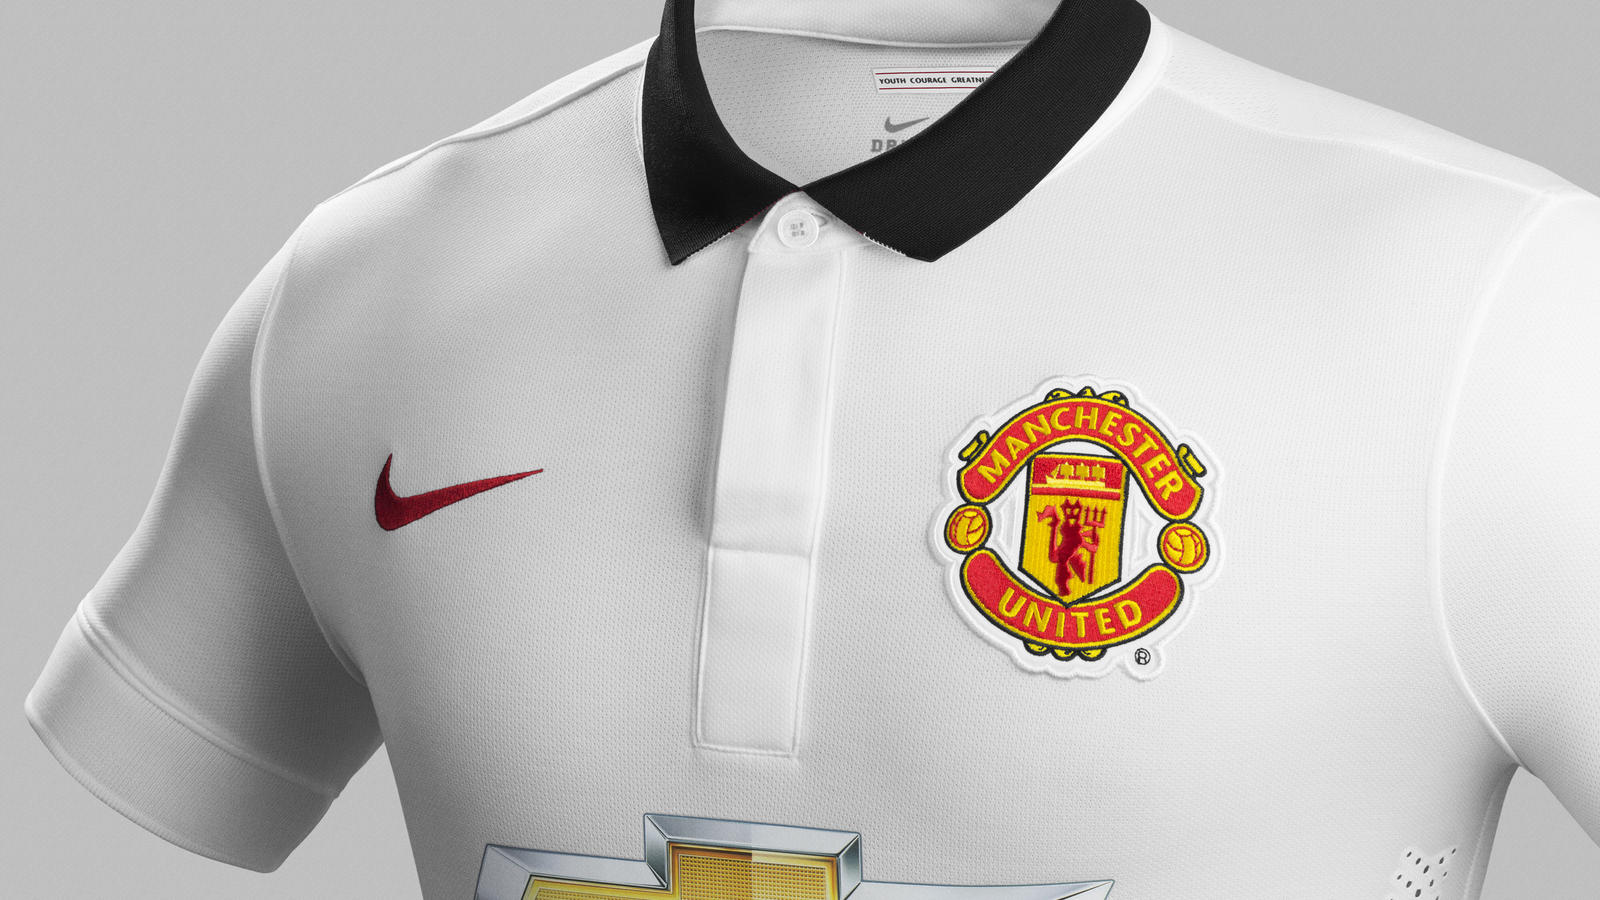 low priced bc540 3b2c0 Nike and Manchester United unveil away kit for season 2014 ...